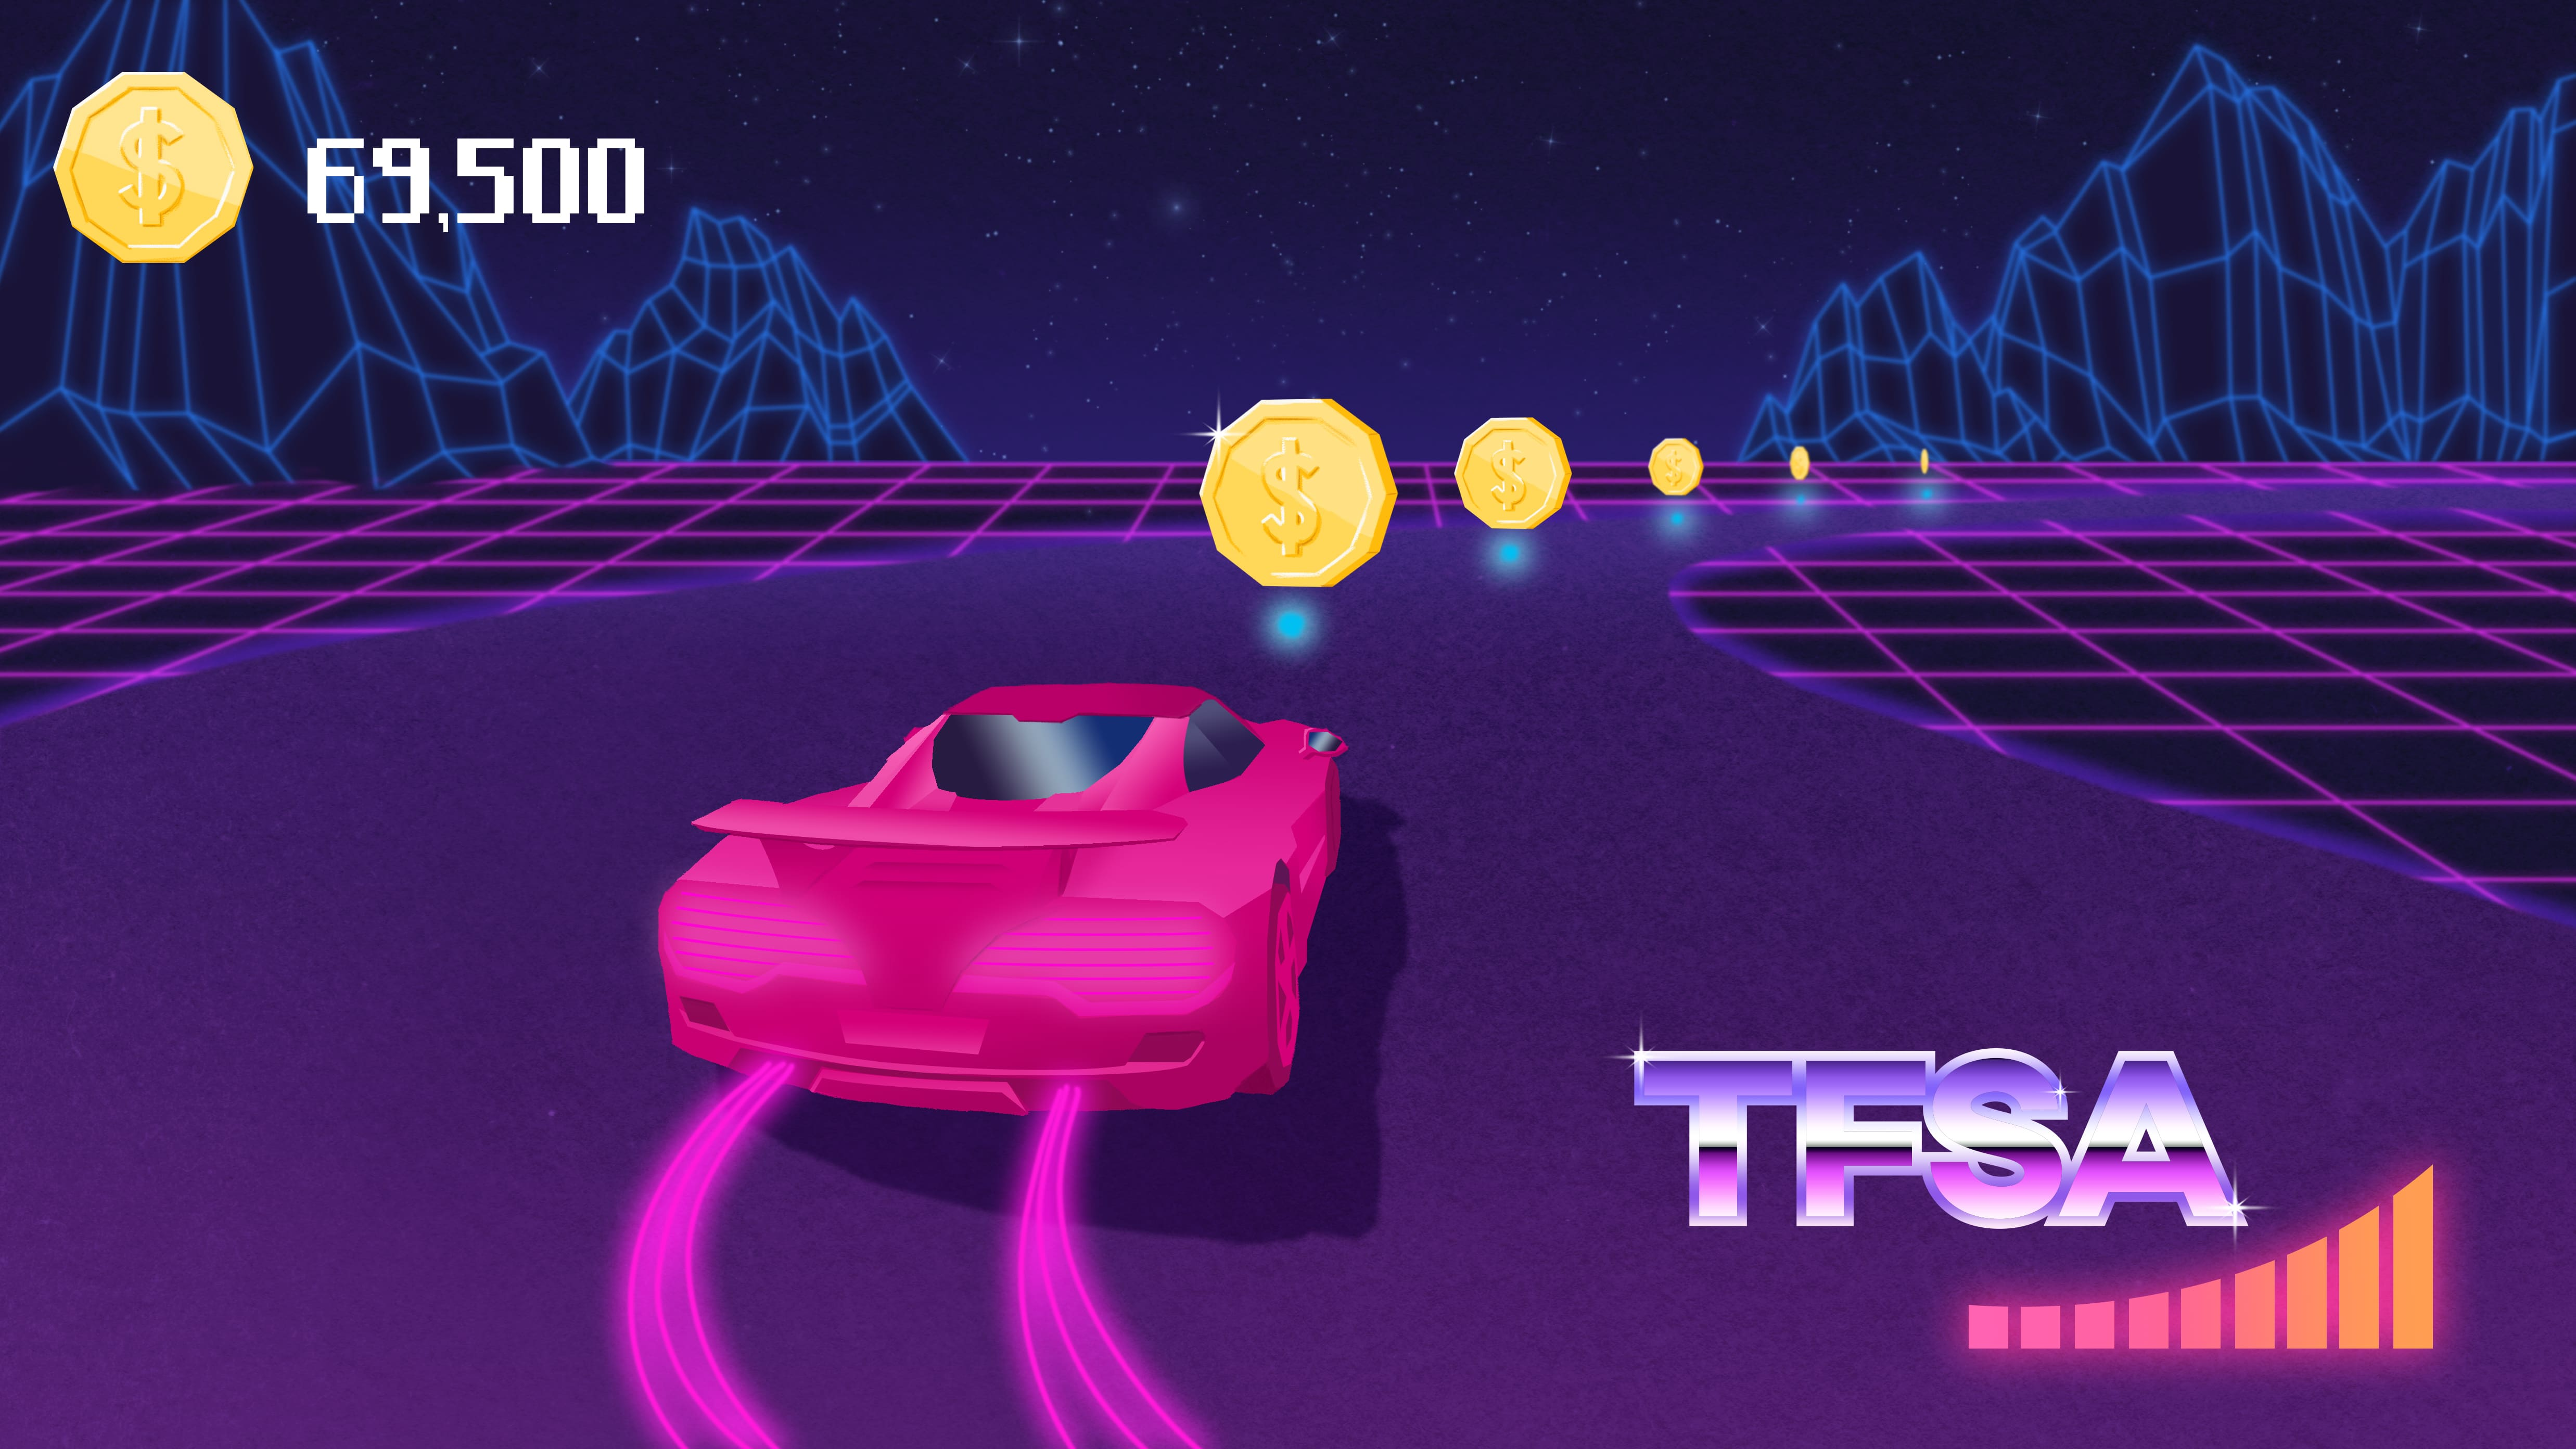 Video game race car collects coins on a stylized racetrack.